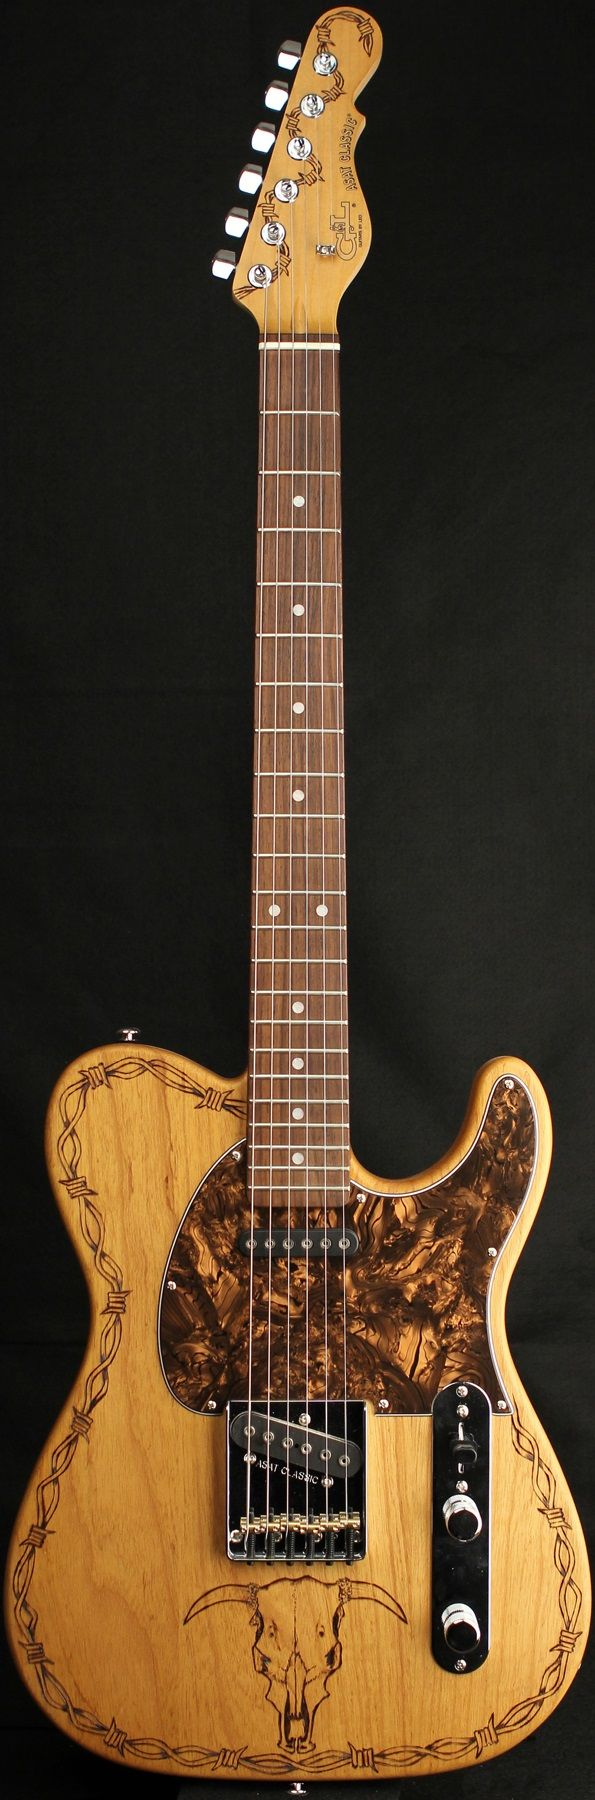 "G&L Guitars ASAT® Classic ""The Wrangler"", Custom engraved/branded Swamp Ash body, Hard Rock Maple neck with Rosewood Fingerboard. Custom artwork by Johnny Garcia"